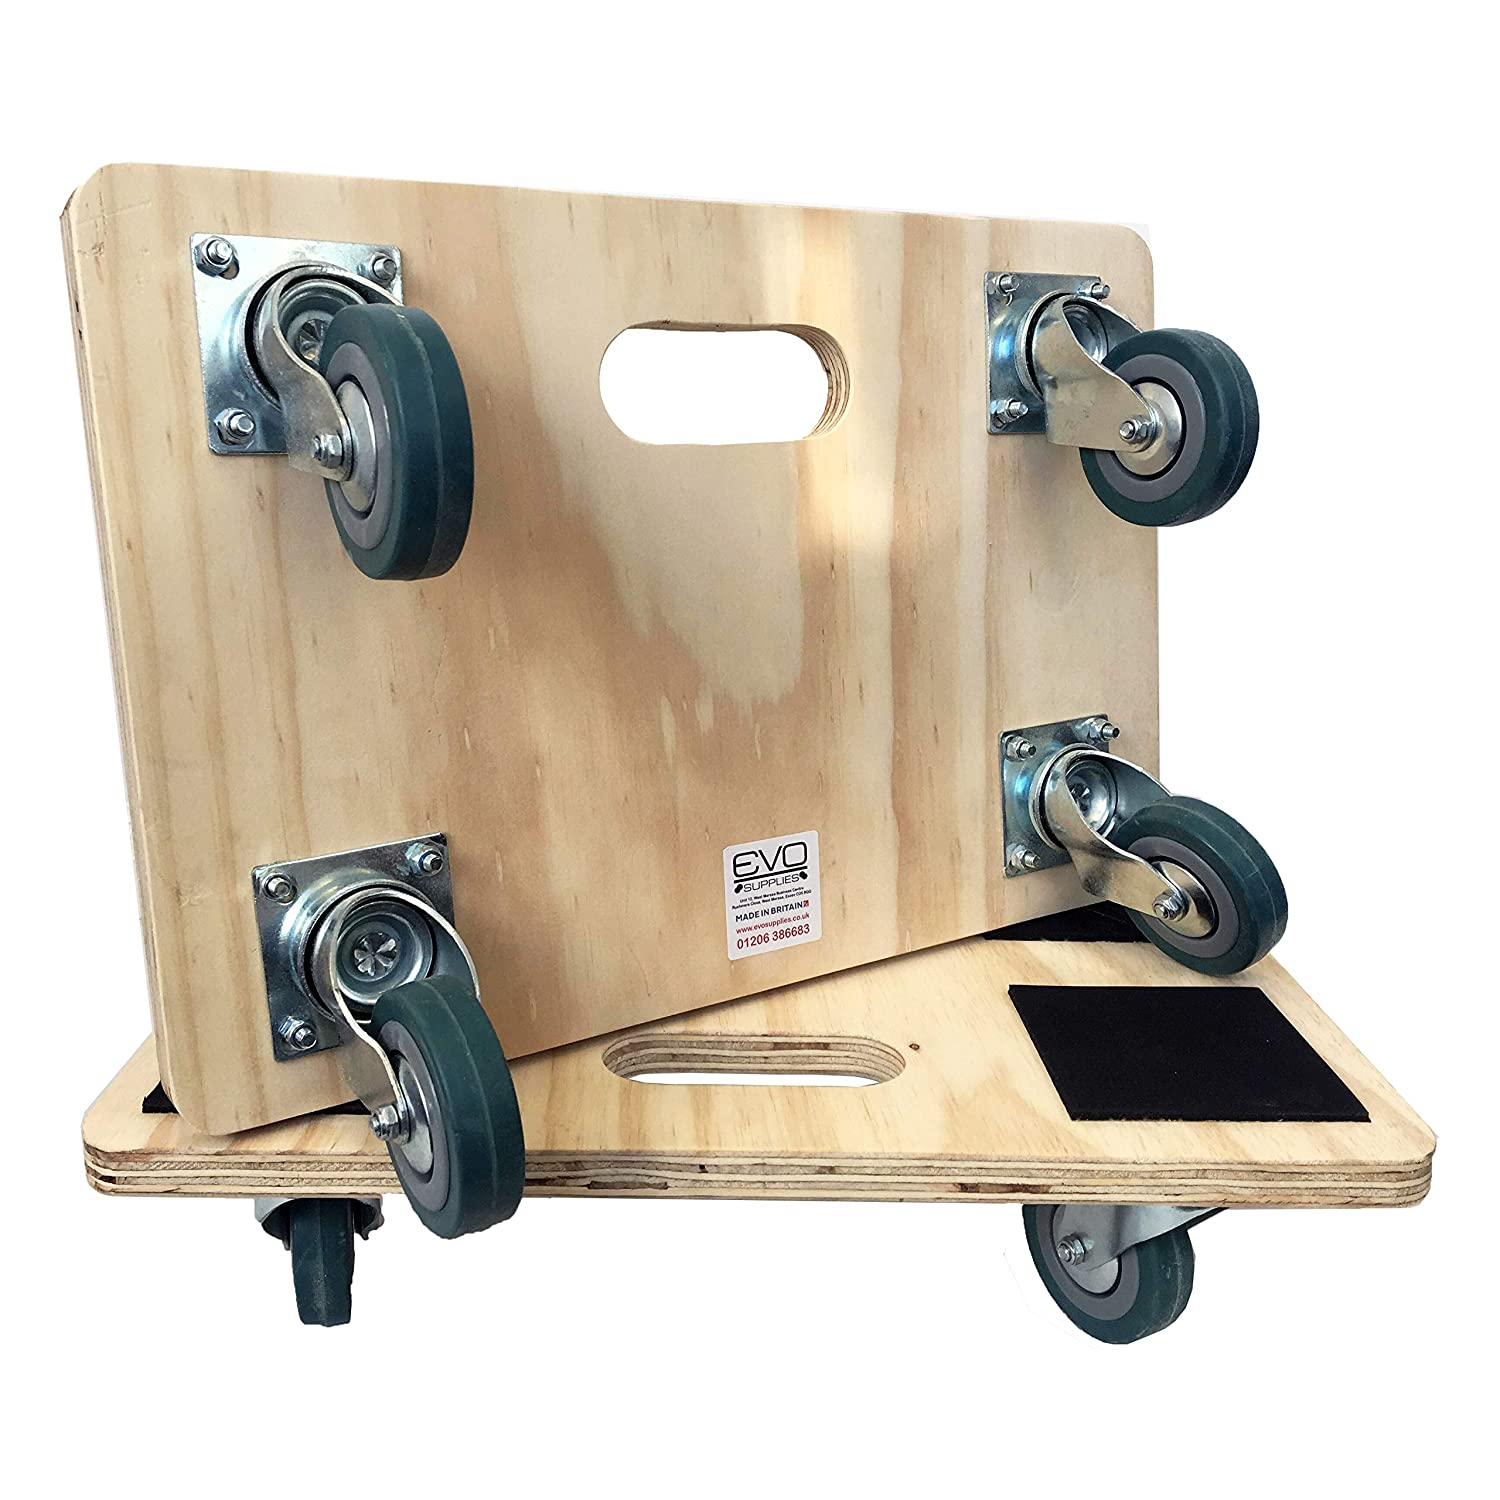 Mini Mover 30x45cm Dolly Removal Moving Trolley Skate Dollytruck swivel wheels 150kg LC Made in the UK